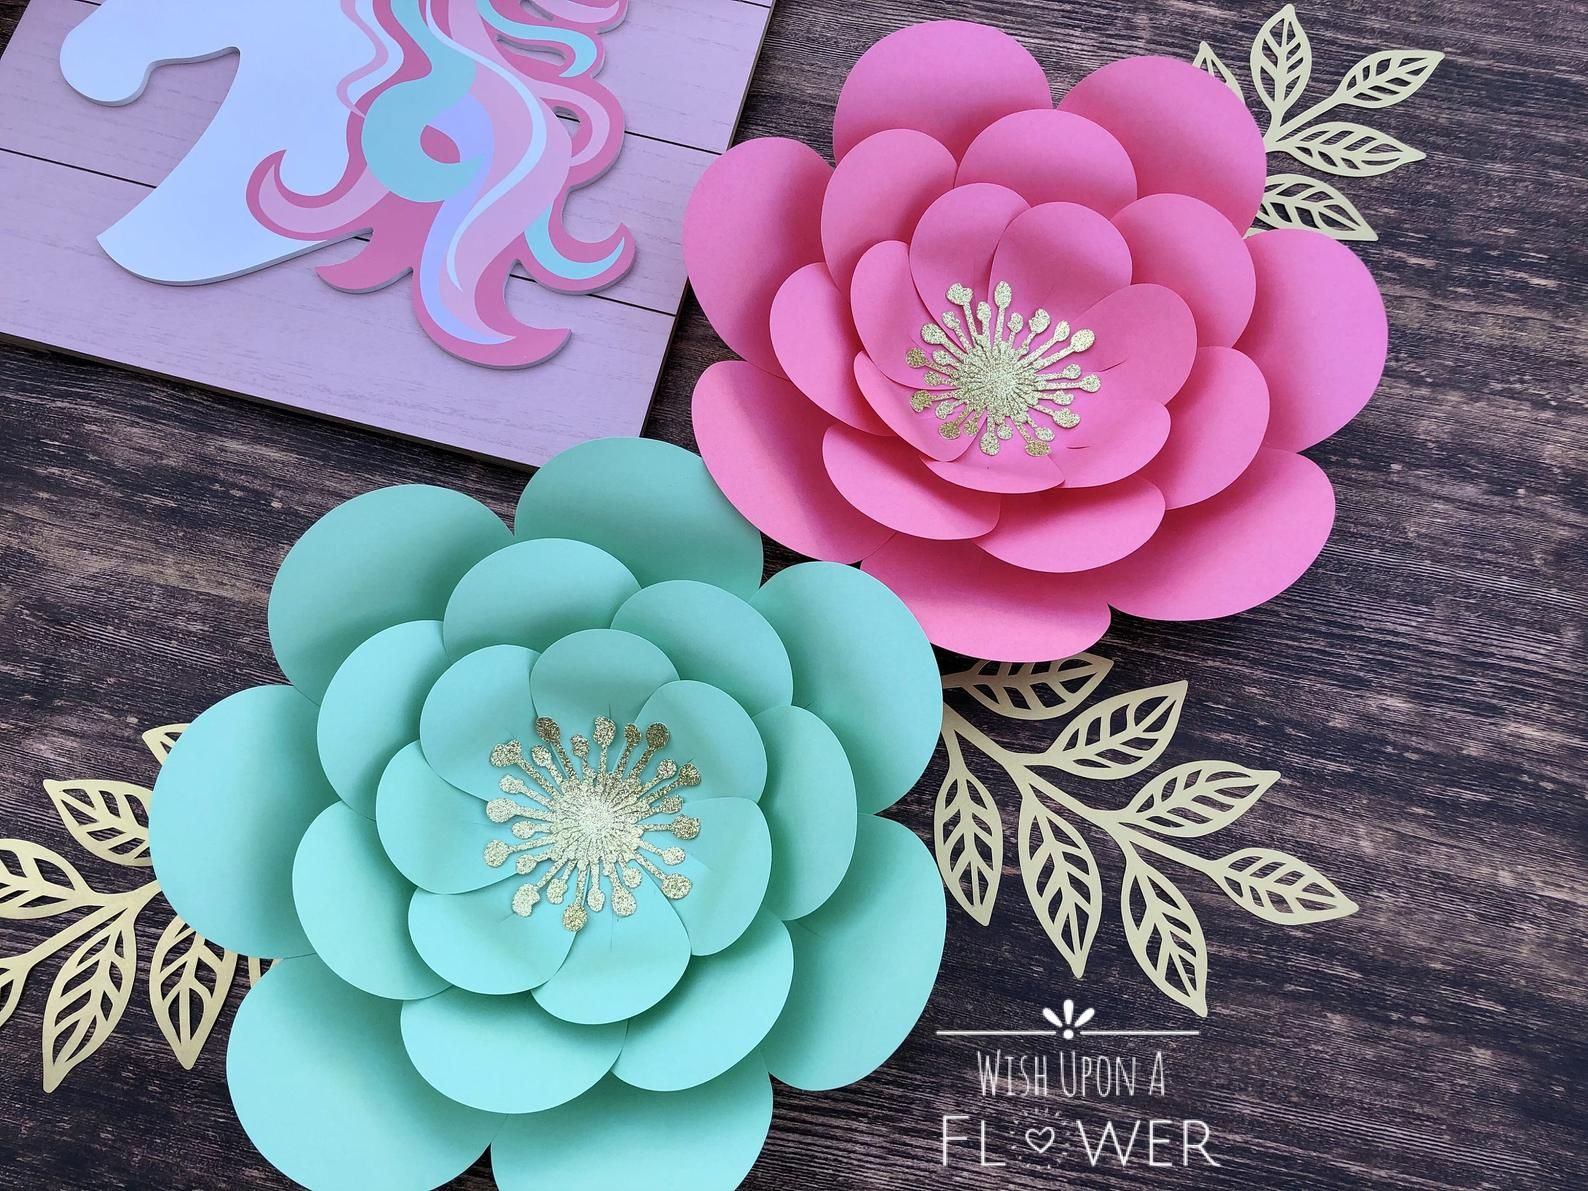 Paper Flowers, Paper Flower Template, Unicorn SVG, Unicorn Flower Template, Paper Flower Wall Decor, Paper Flower SVG, Paper Flower DIY #bigpaperflowers